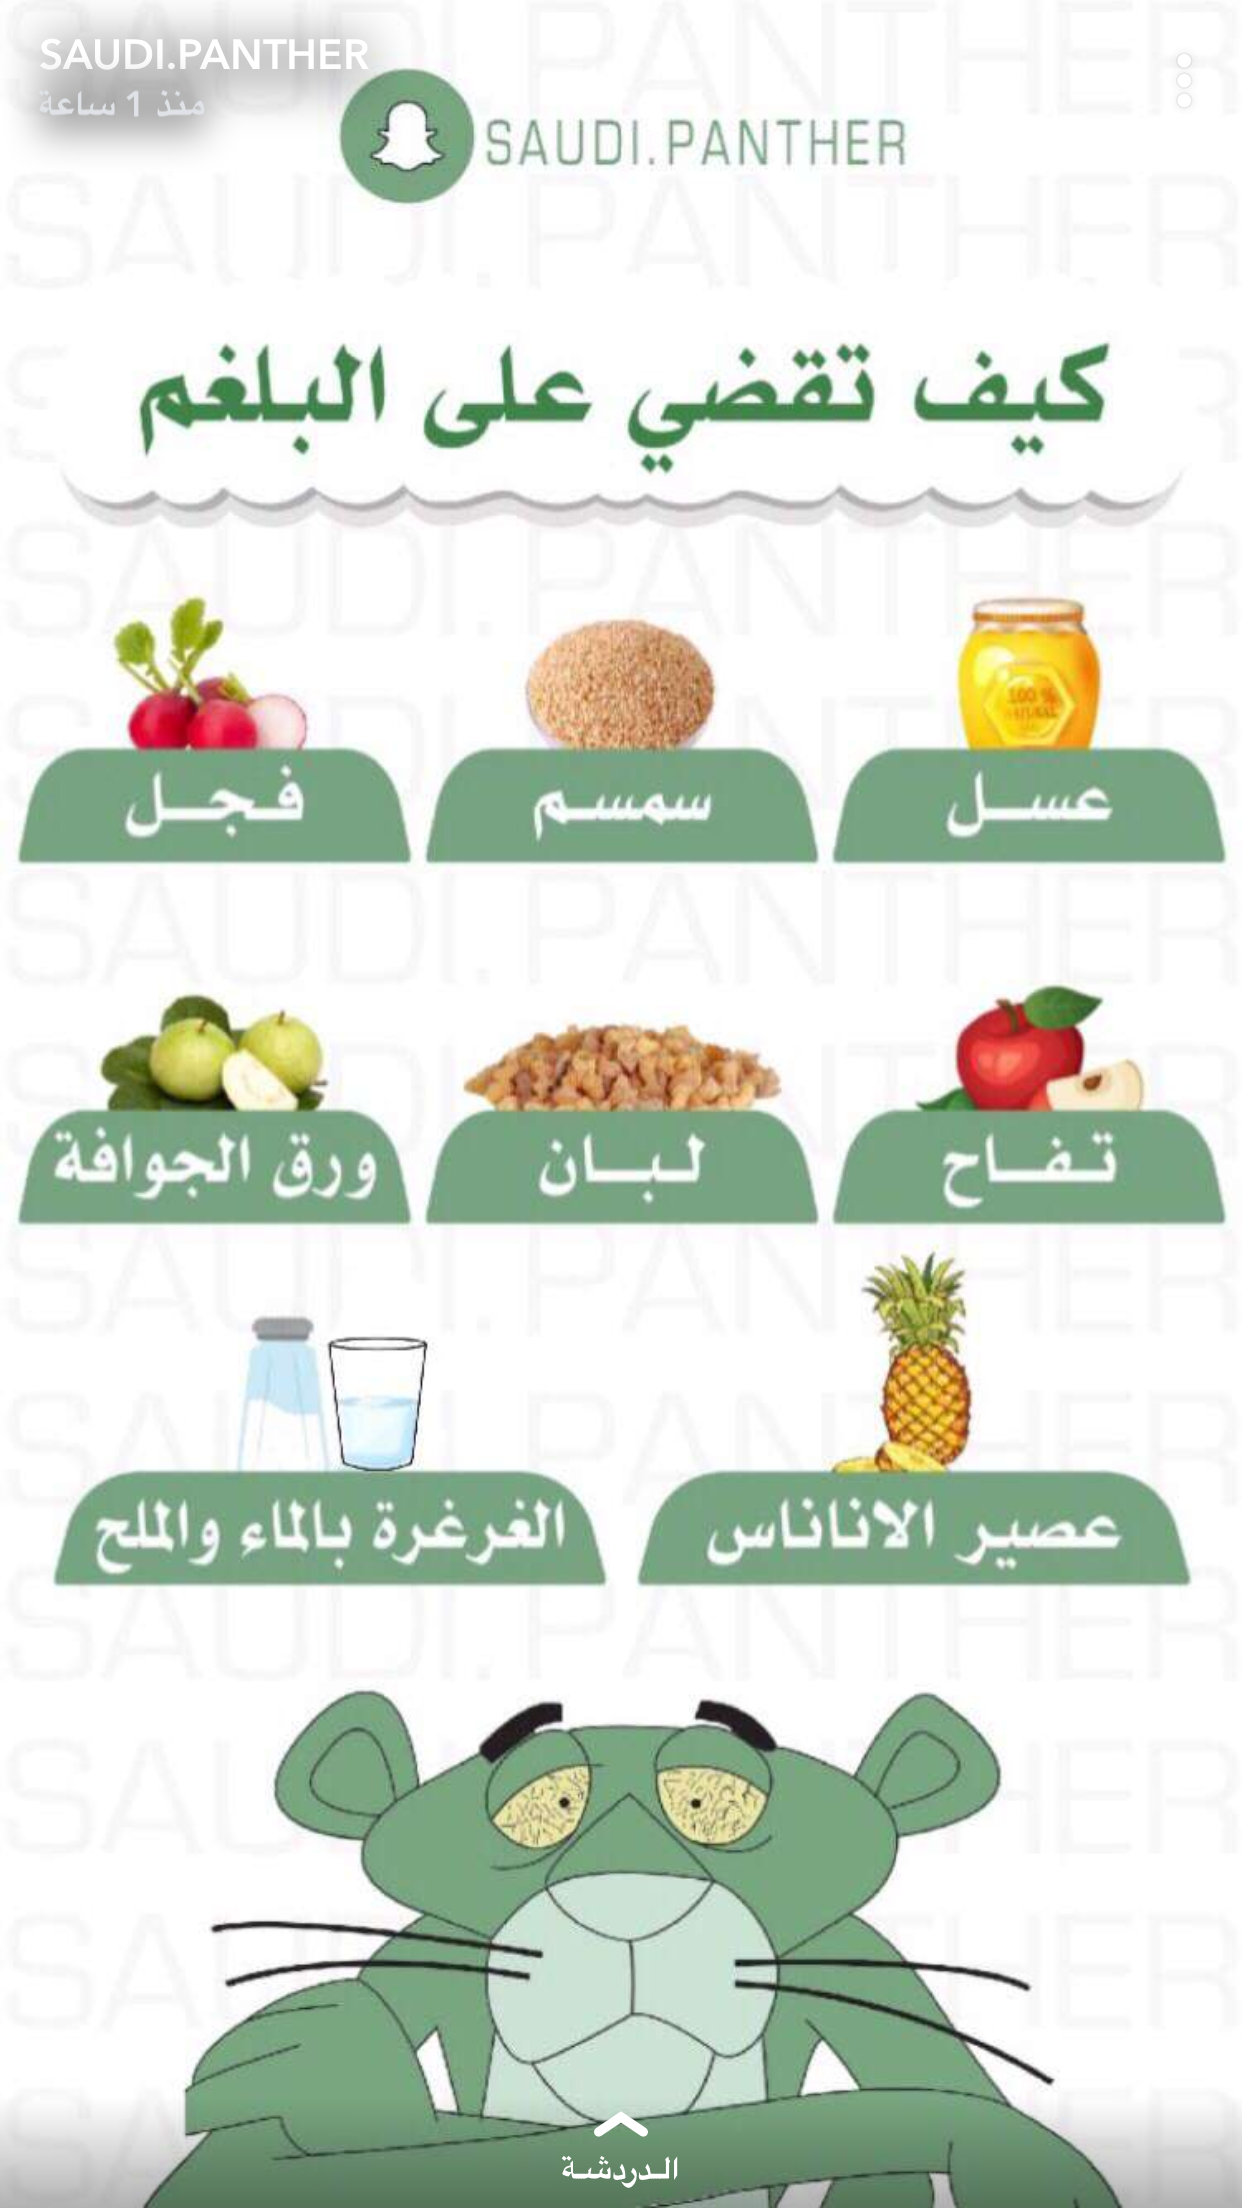 Pin By Iiwn22 On Cooking Health Facts Fitness Health Fitness Nutrition Health Facts Food